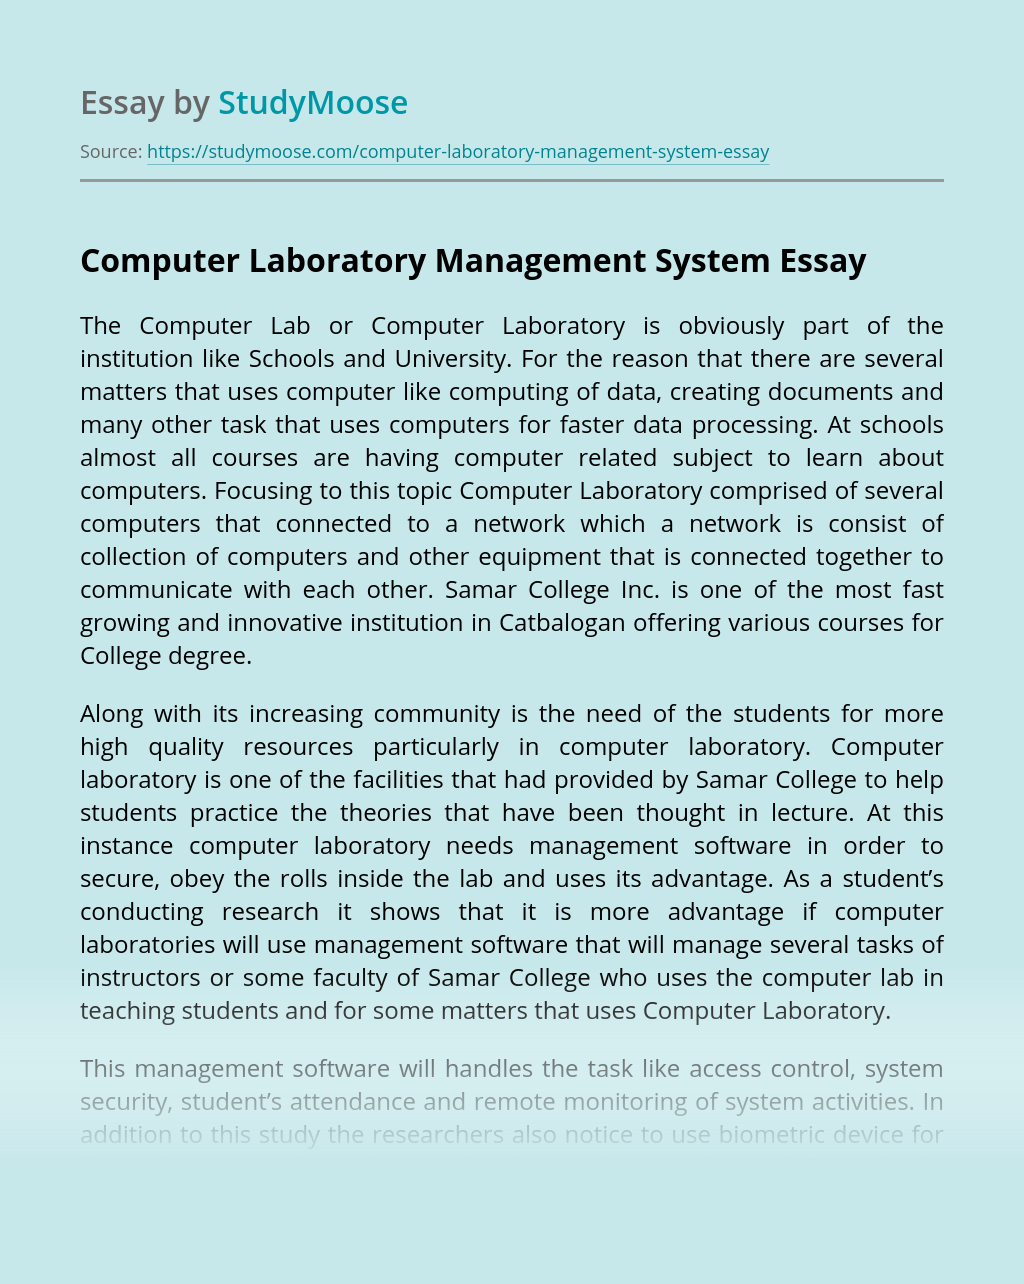 Computer Laboratory Management System